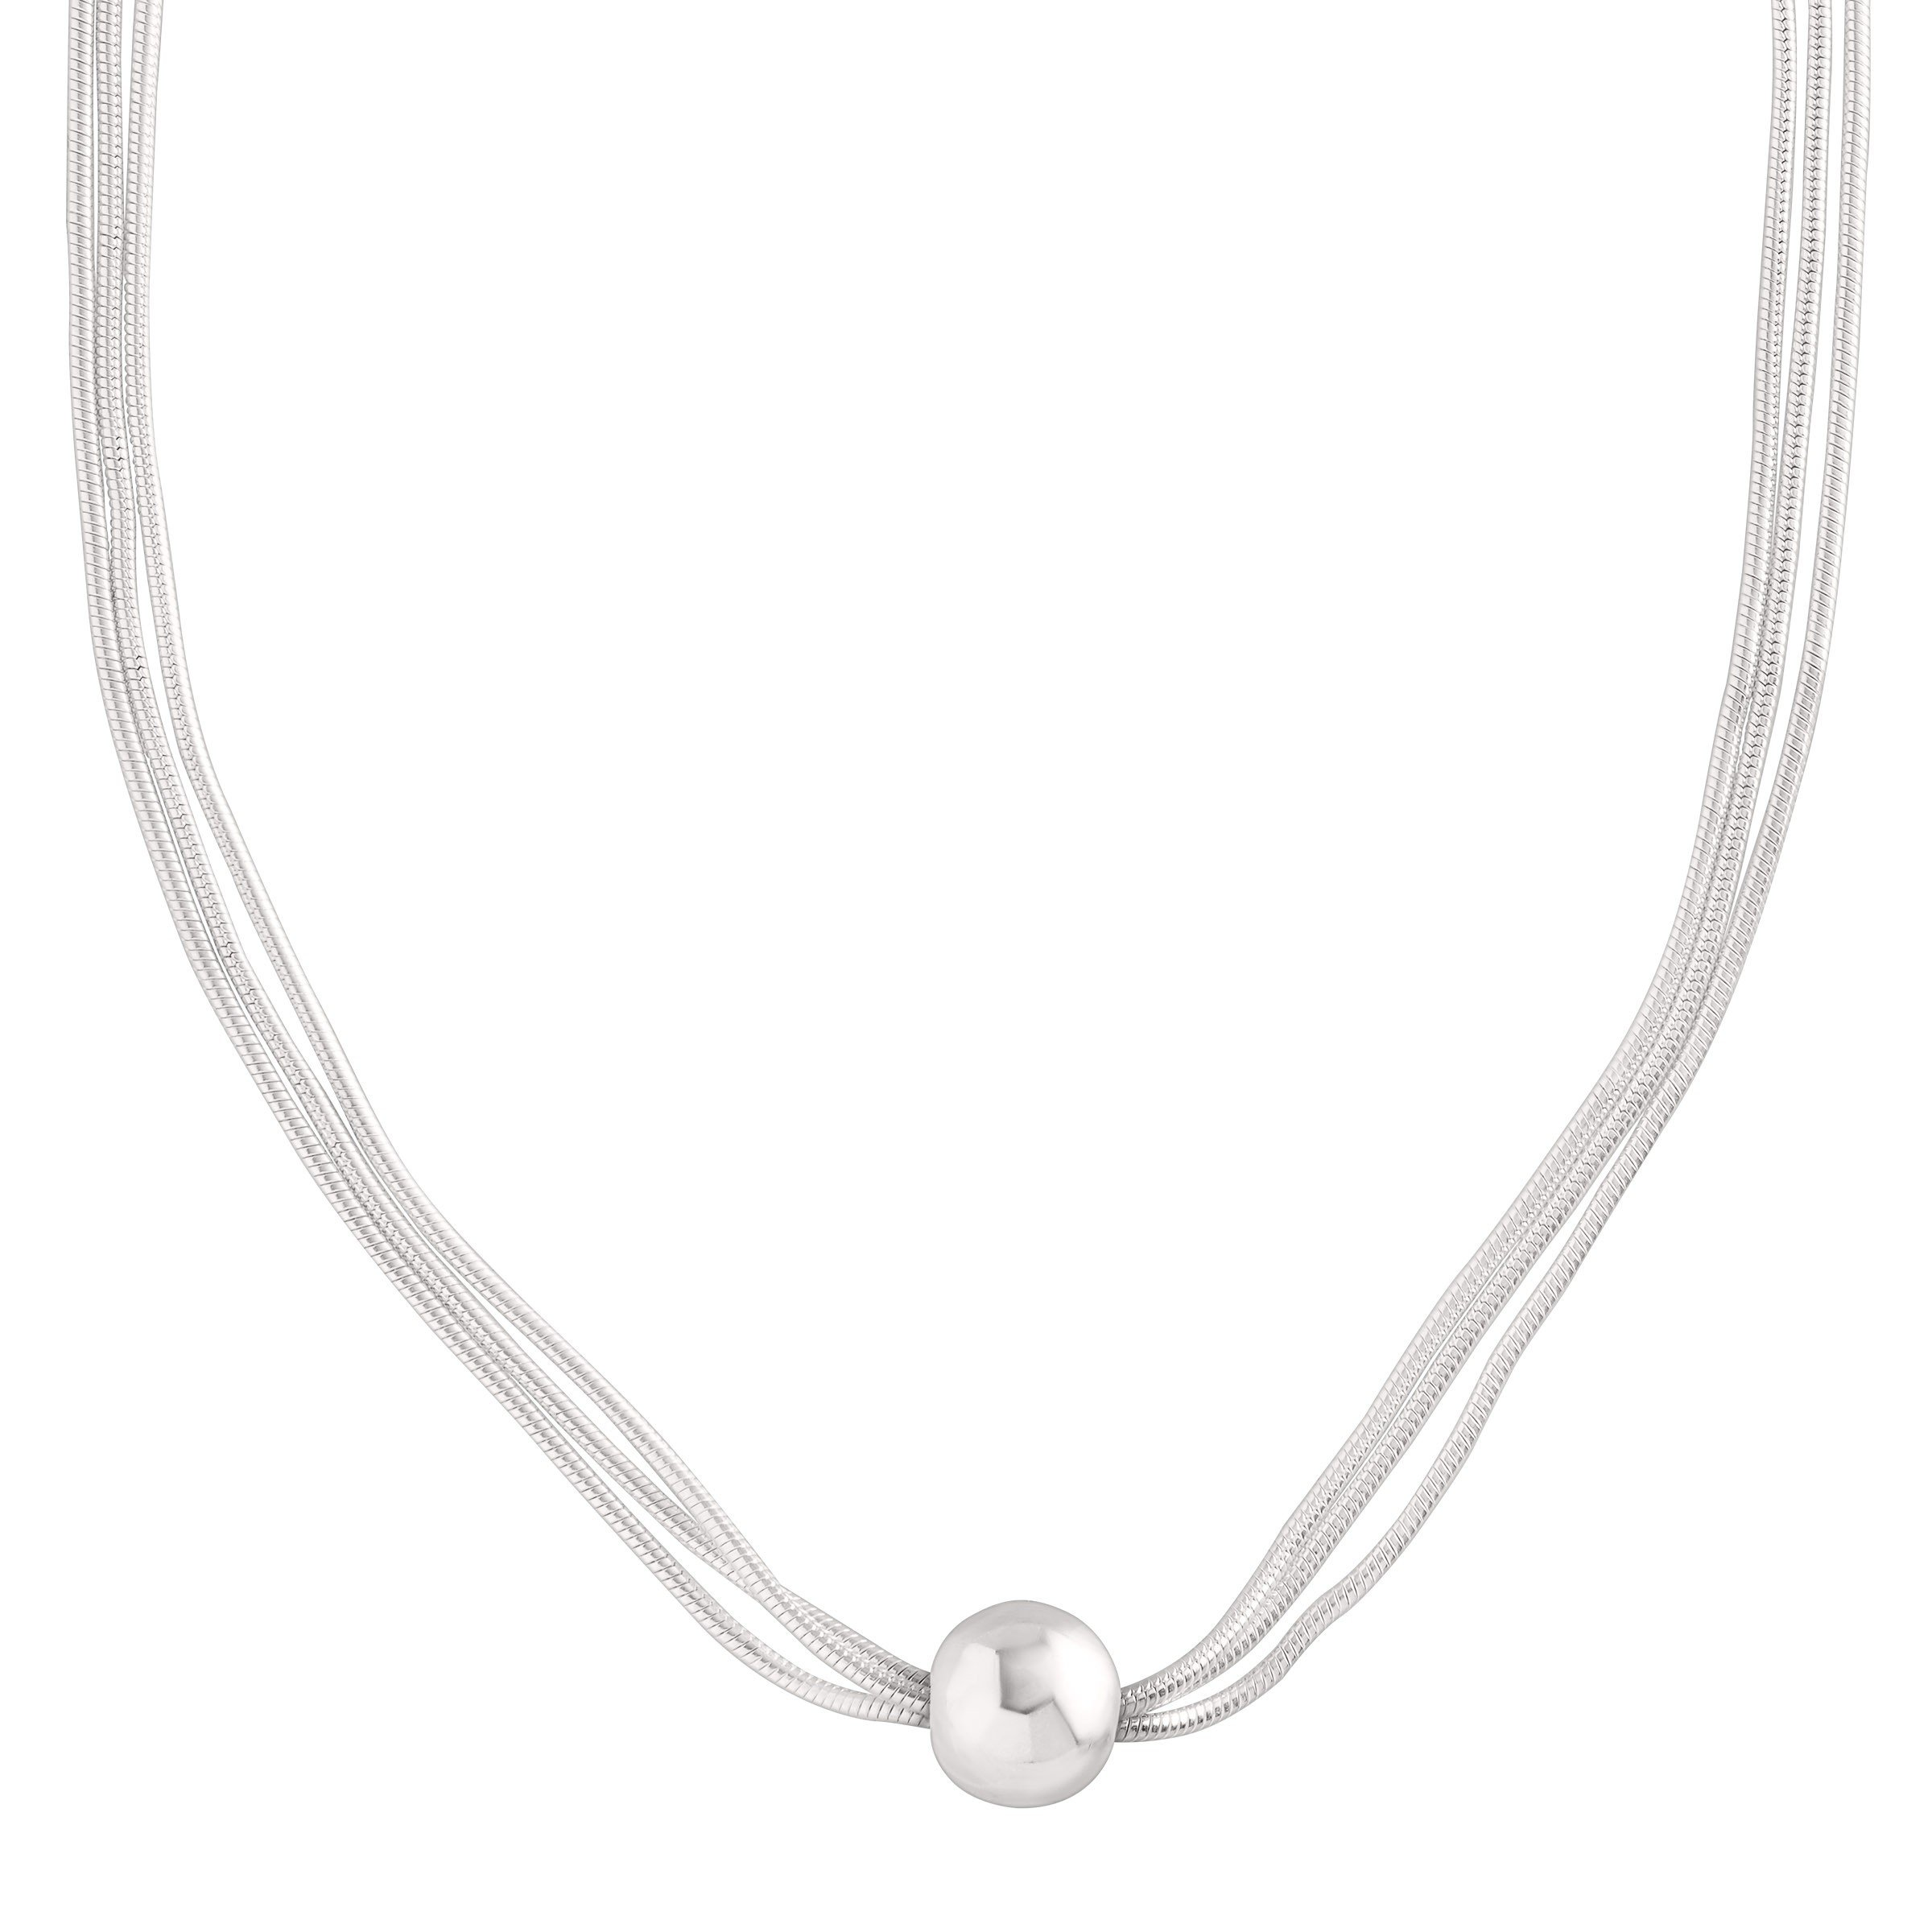 Silpada 'Thoreau' Multi-Strand Necklace in Sterling Silver